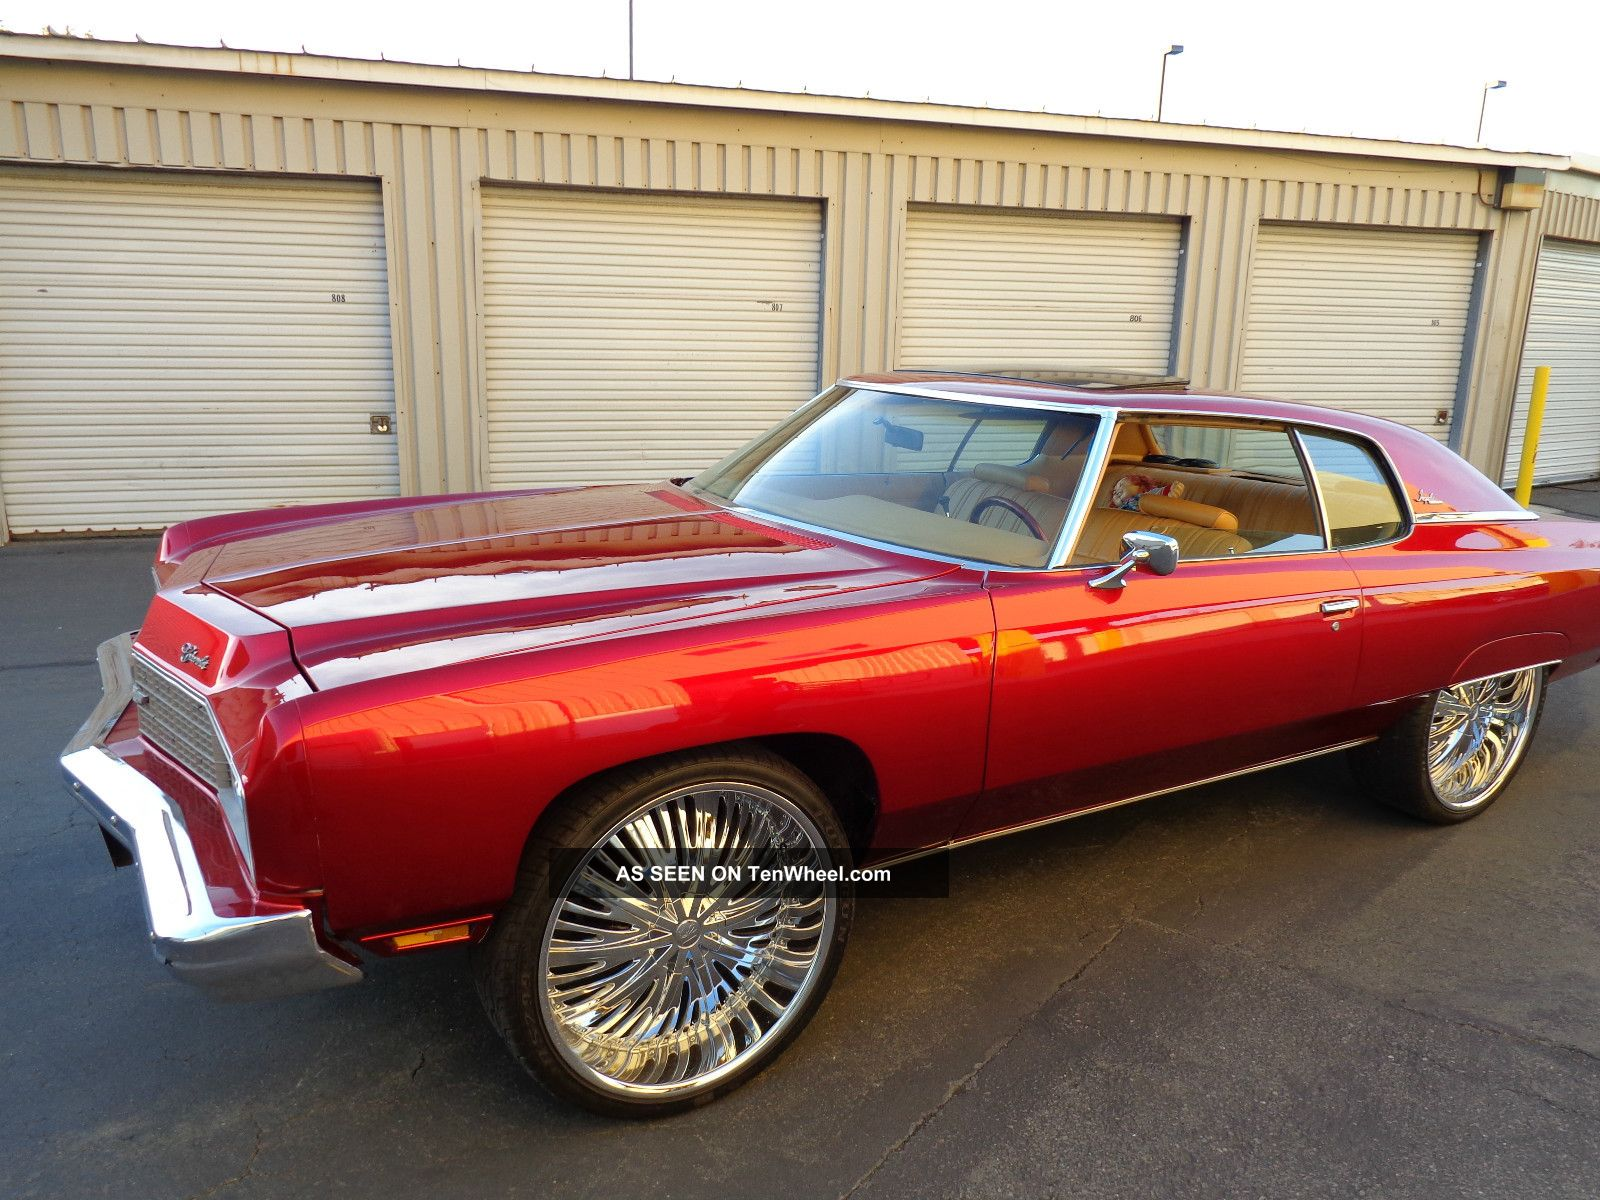 1973 Chevrolet Impala Candy Apple Red Paint Peanut Butter Interior